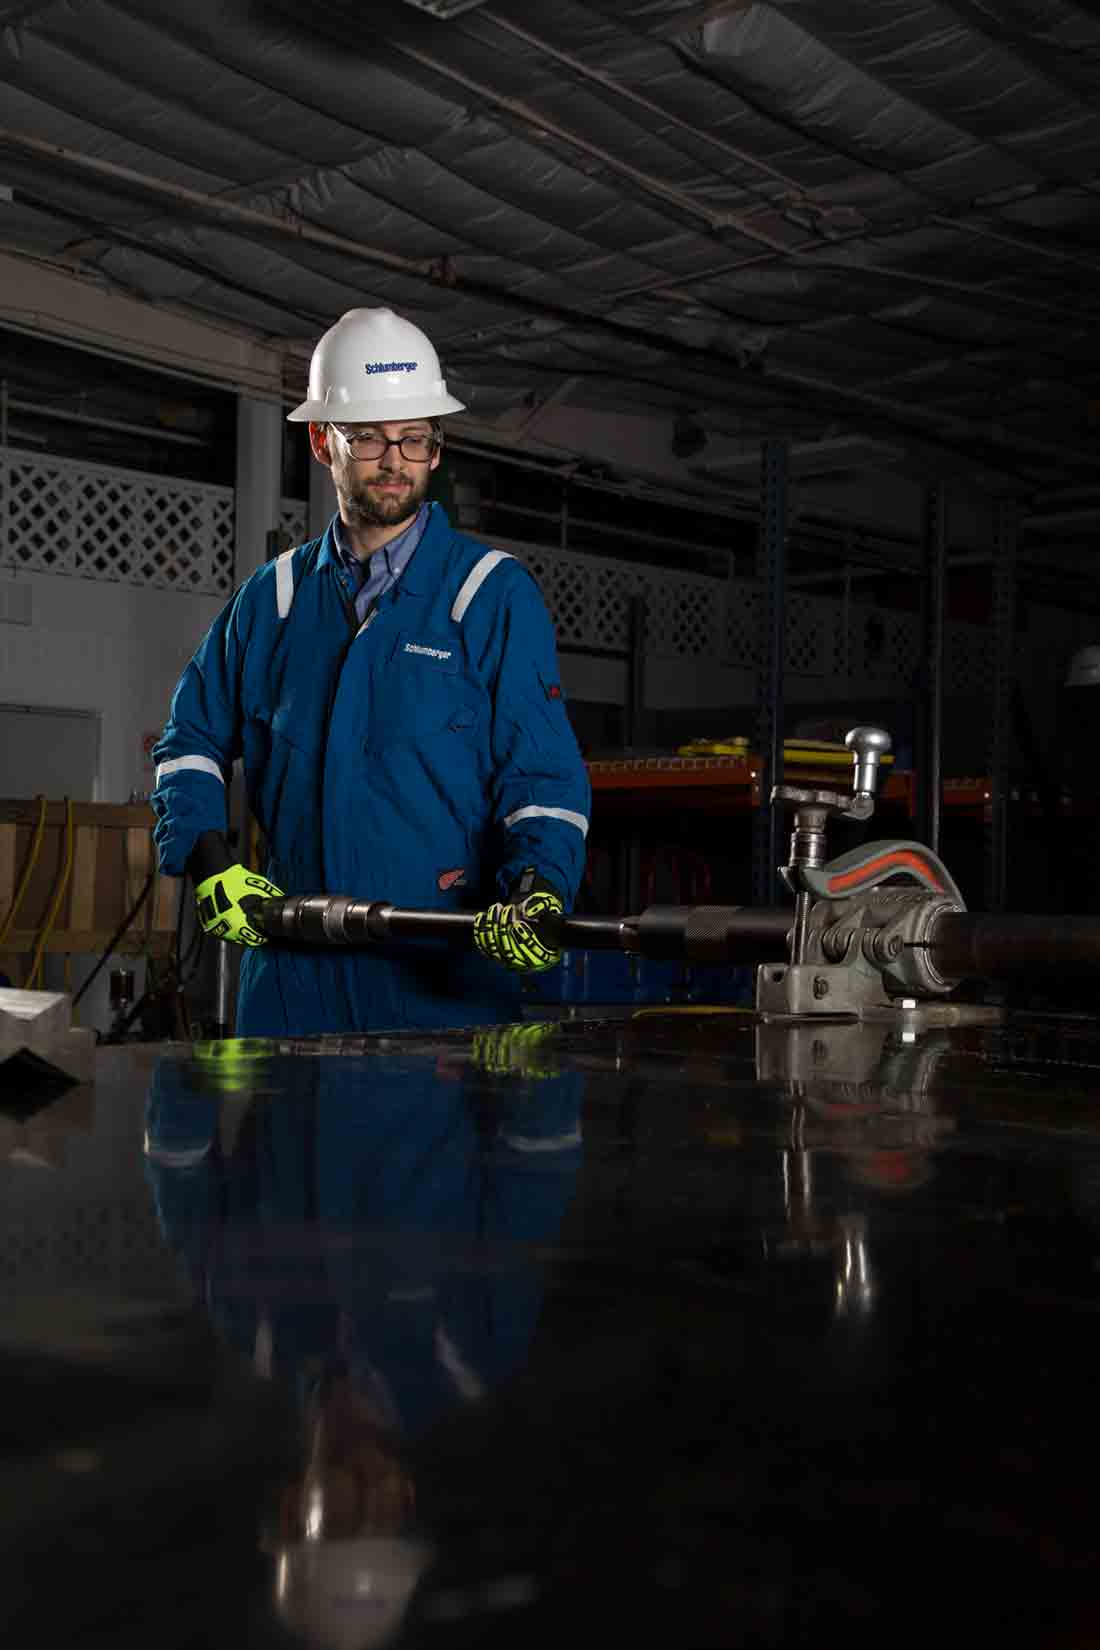 Schlumberger Employee in a lab holding the ACTive Xtreme tool.